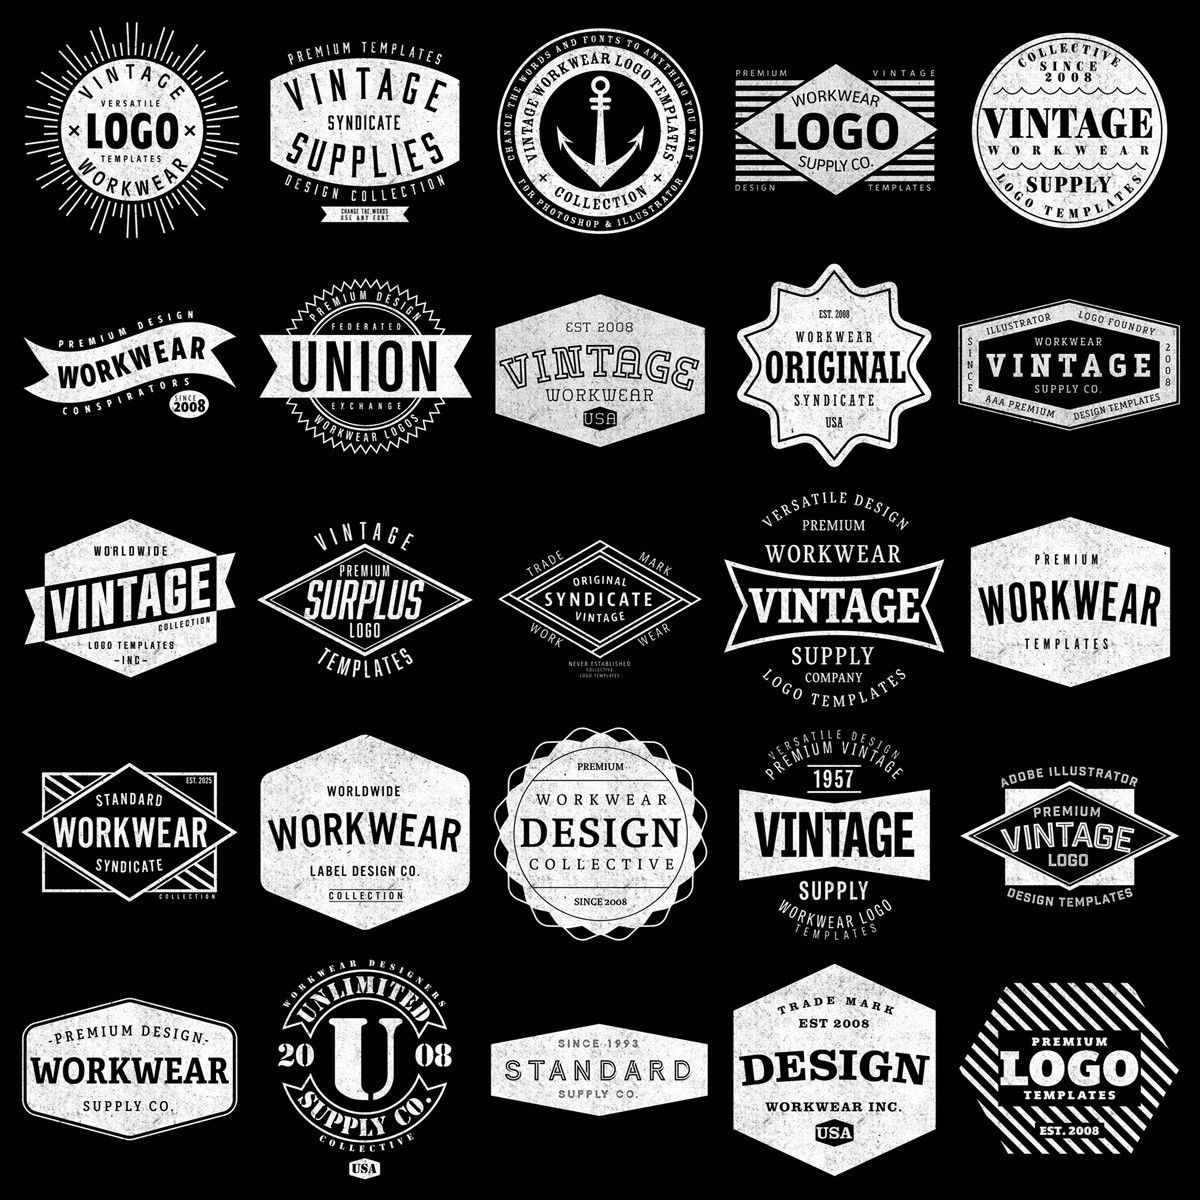 Vintage Workwear Logo Templates Vintage graphic design